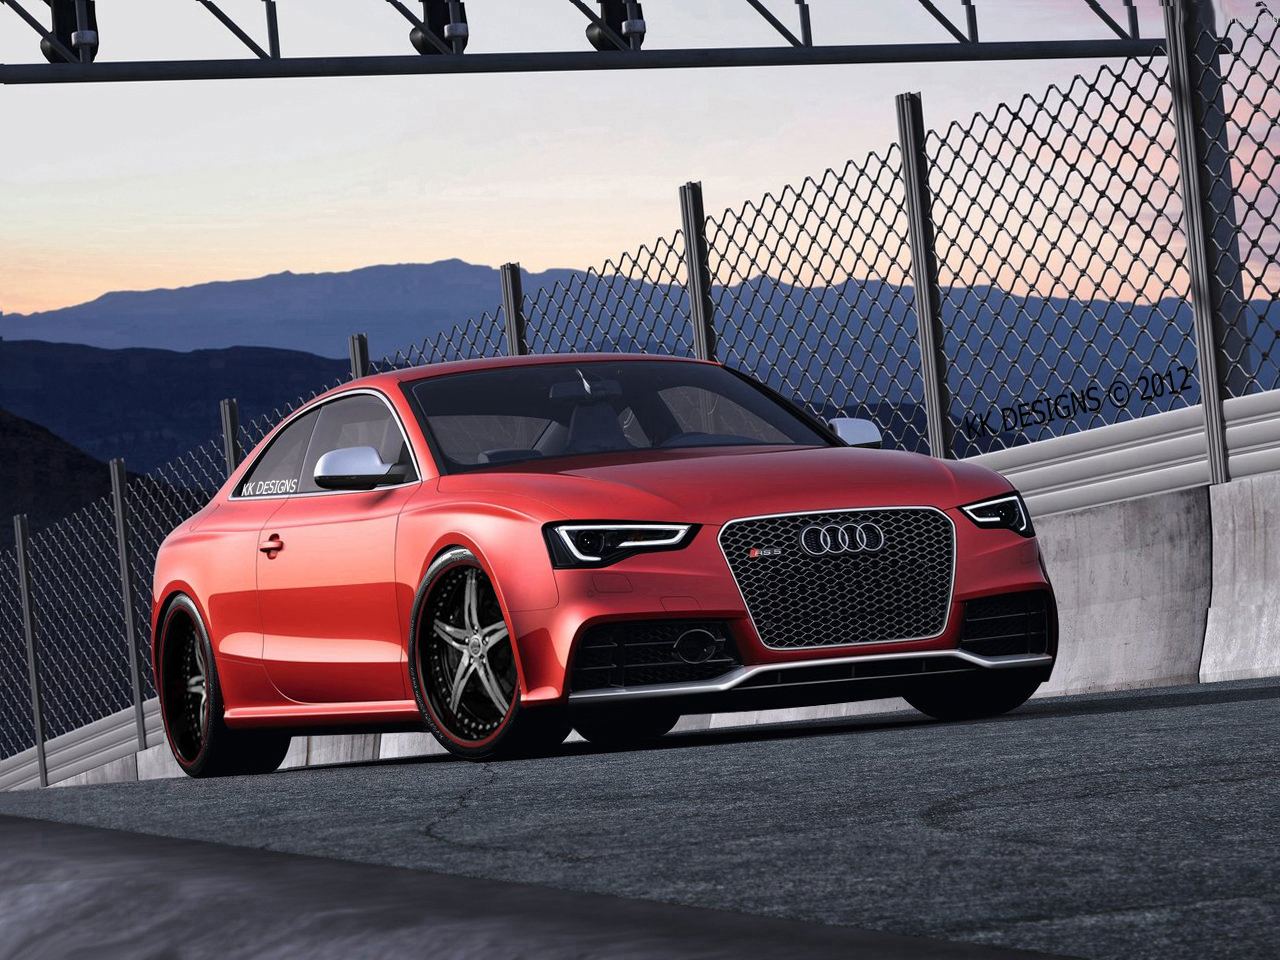 Audi Wallpaper High Resolution 1280x960